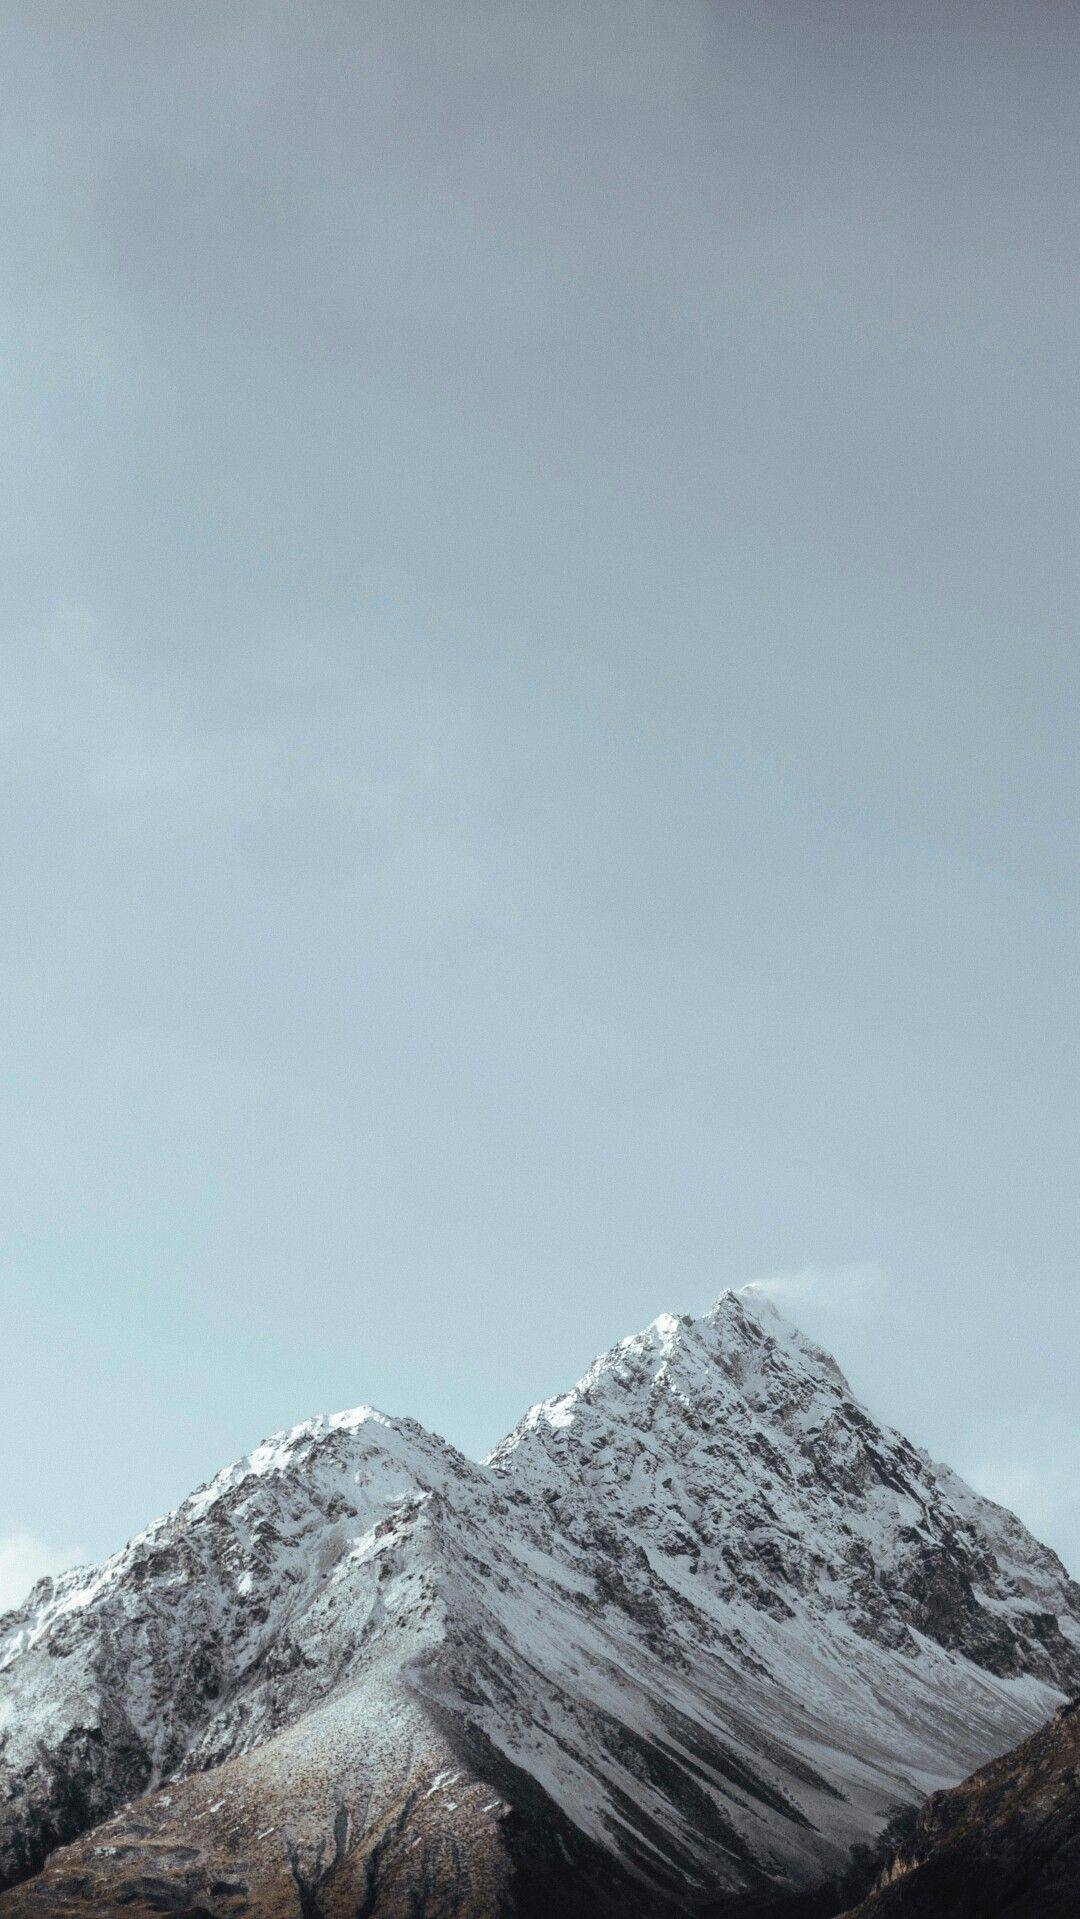 Snow Mountains Winter Nature iPhone Wallpaper